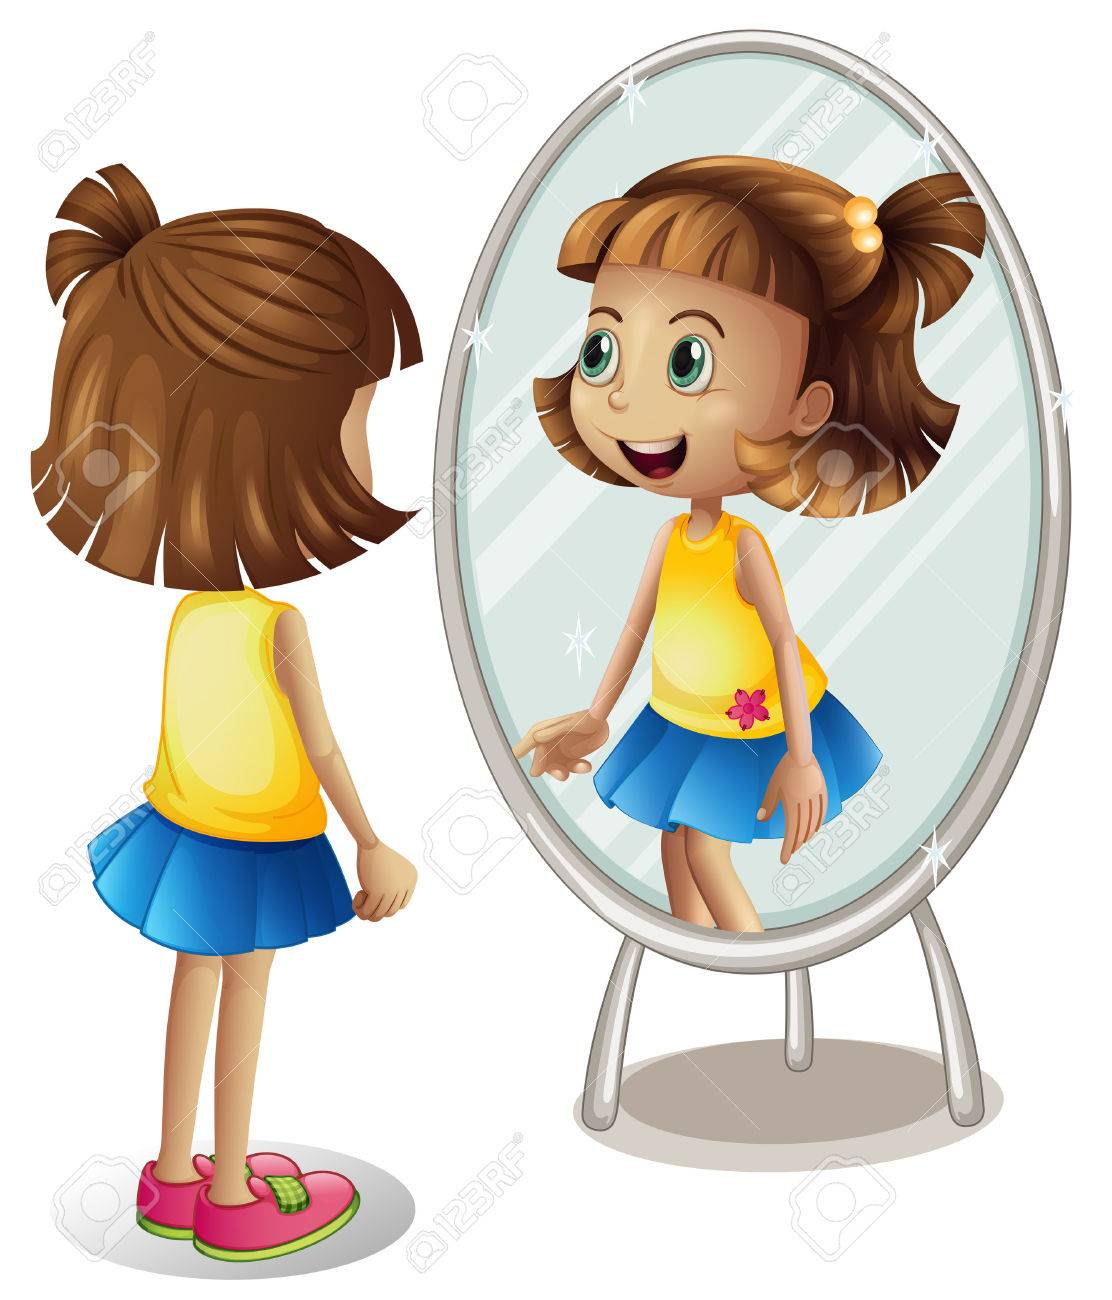 Little girl looking at herself in mirror illustration - 69835579